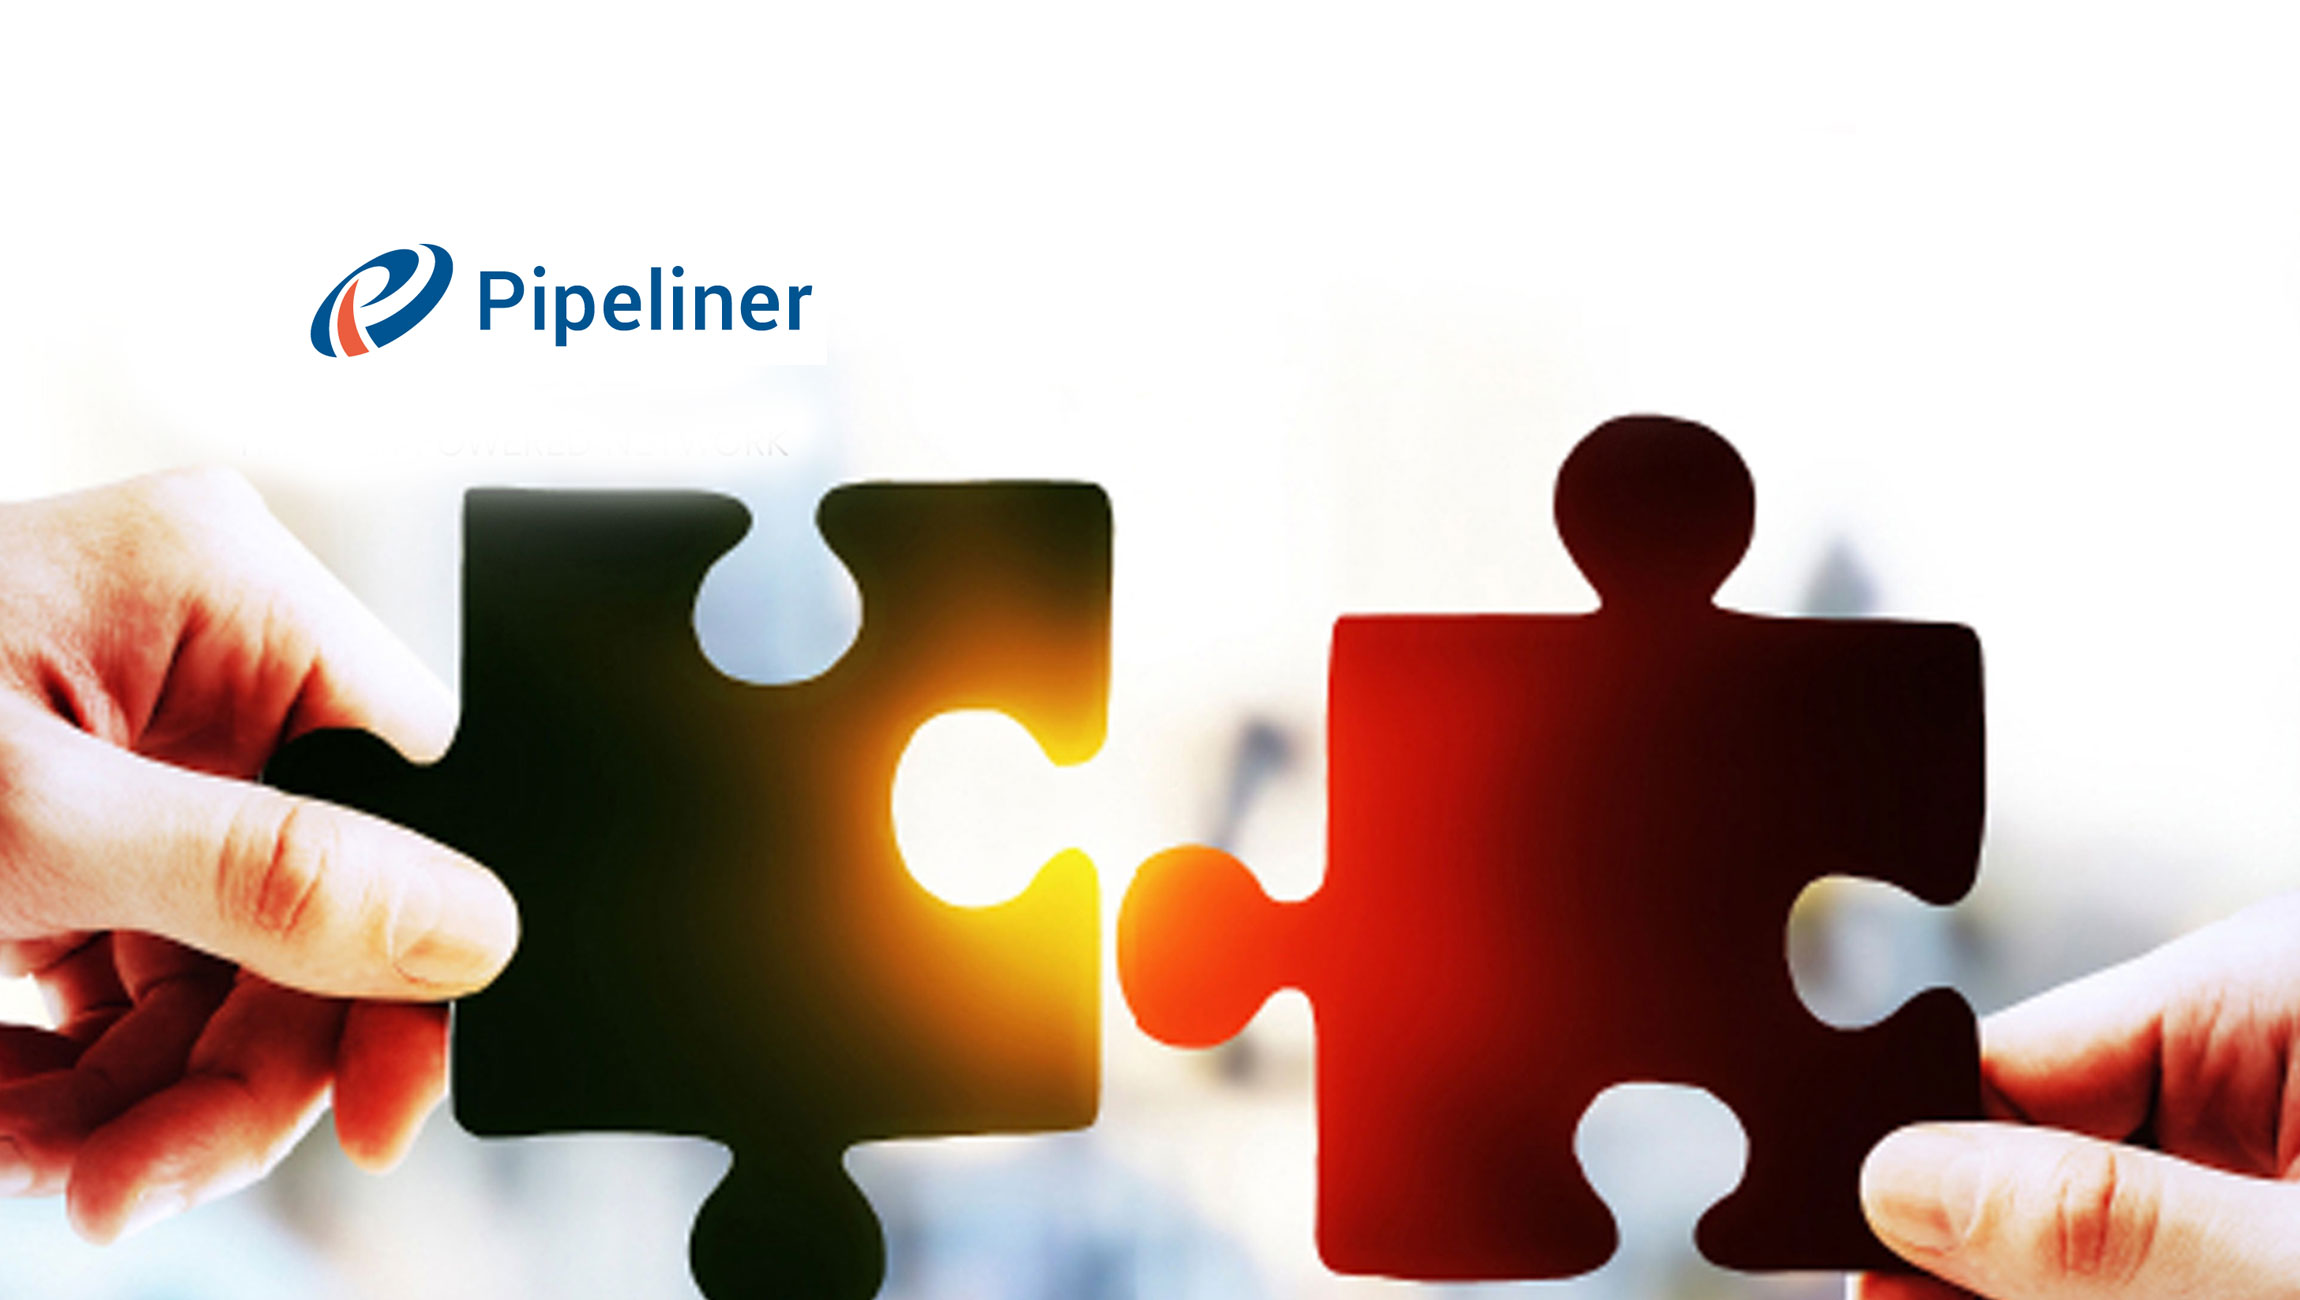 Pipeliner CRM & The Center for Sales Leadership at DePaul University Announce New Partnership